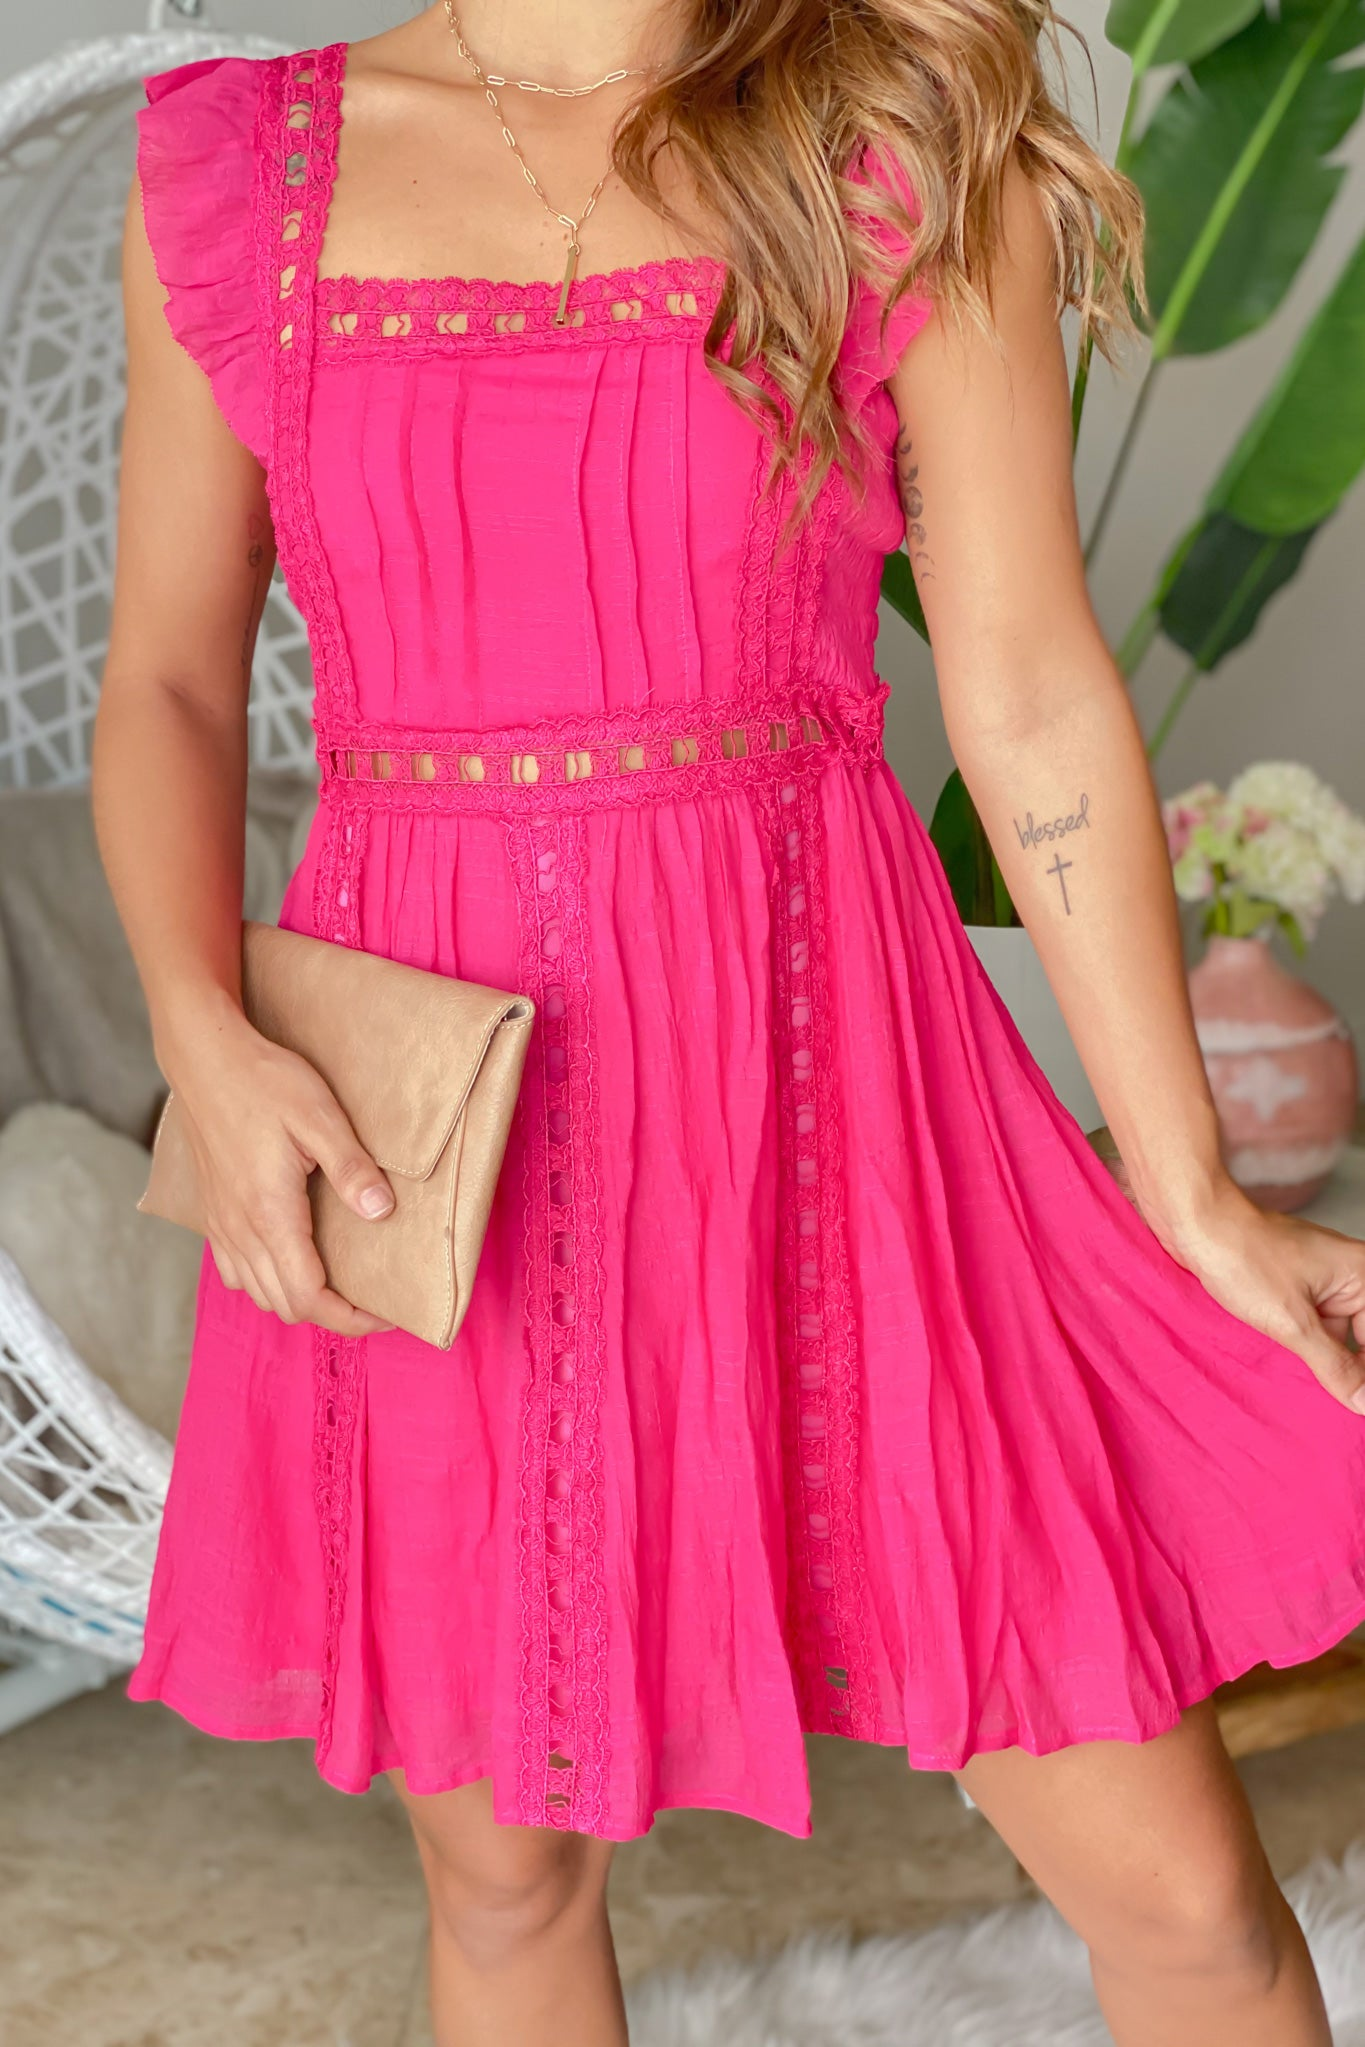 Lifestyle hot pink short dress with lace detail